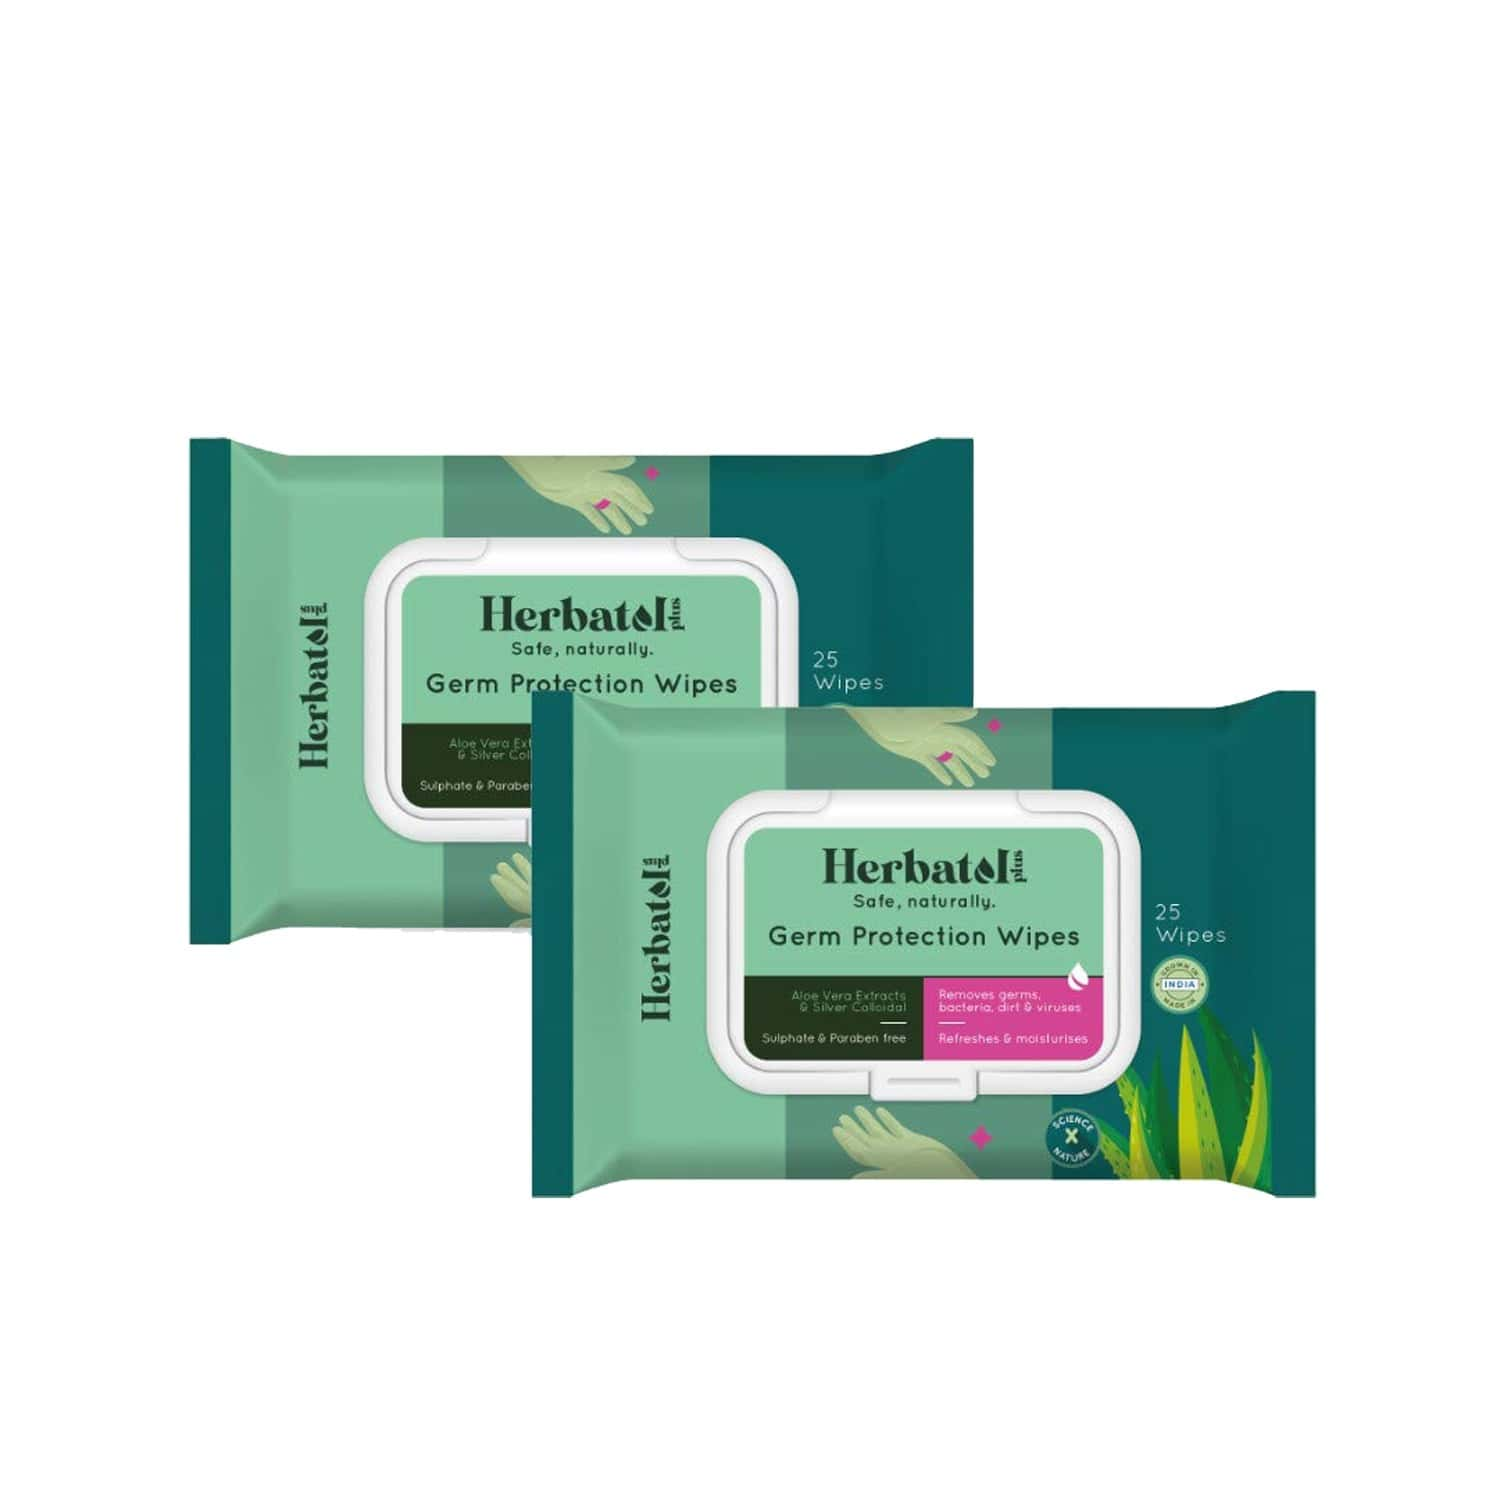 Herbatol Plus Germ Protection Wipes - 100% Biodegradable | Safe On Skin - Aloe Vera Extracts(pack Of 2) - 50's